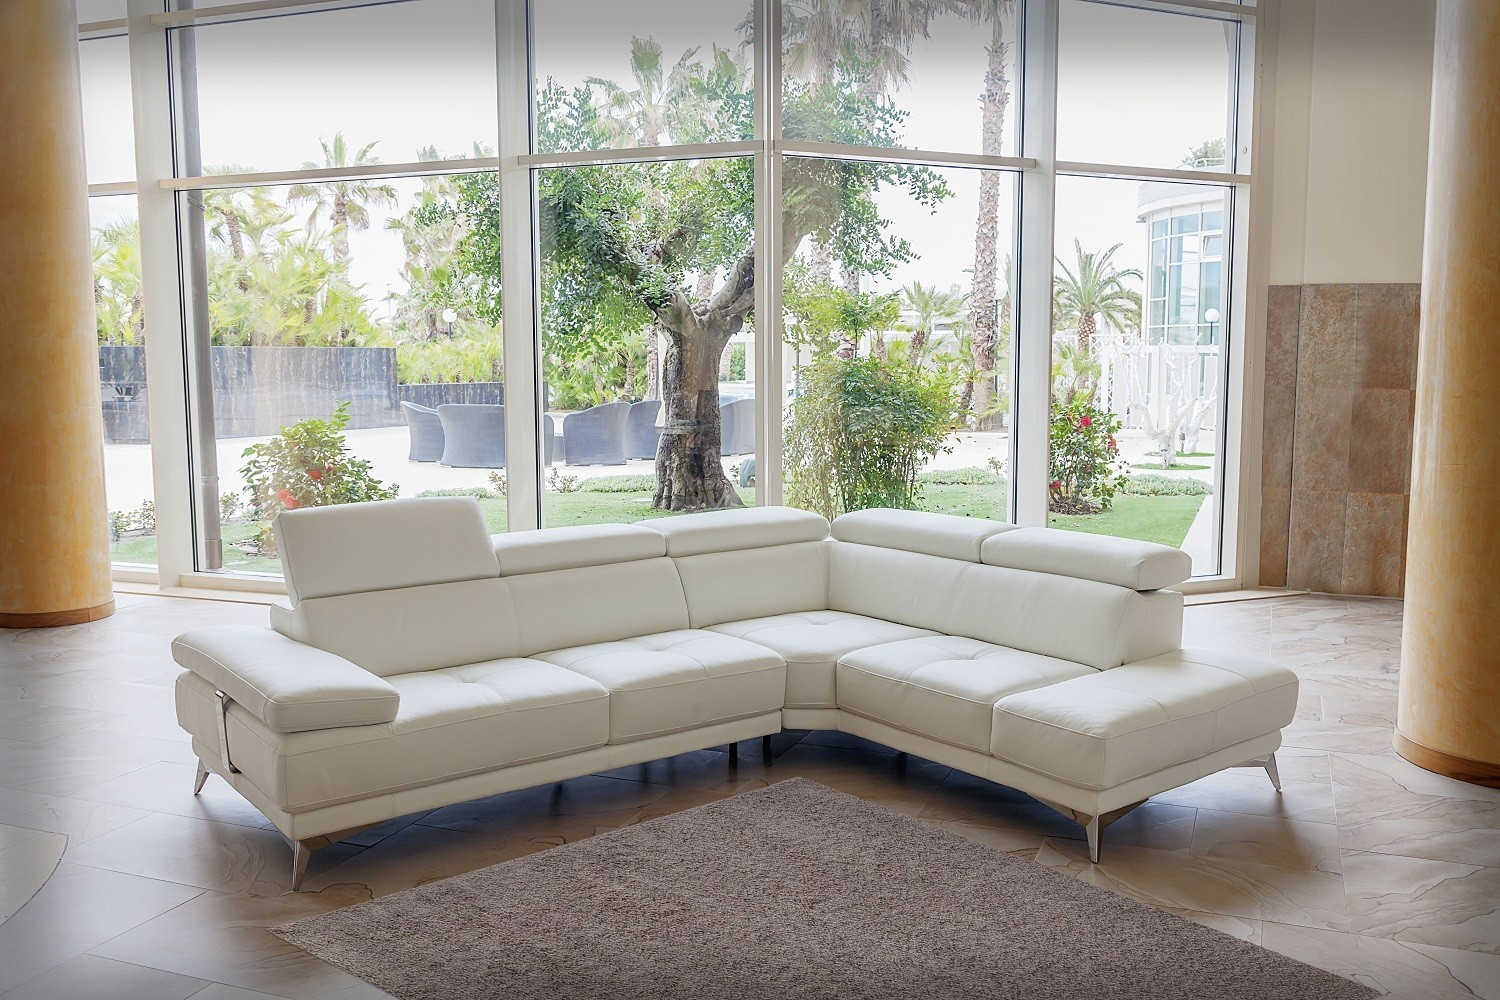 Overnice Tufted Full Italian Leather L-shape Furniture